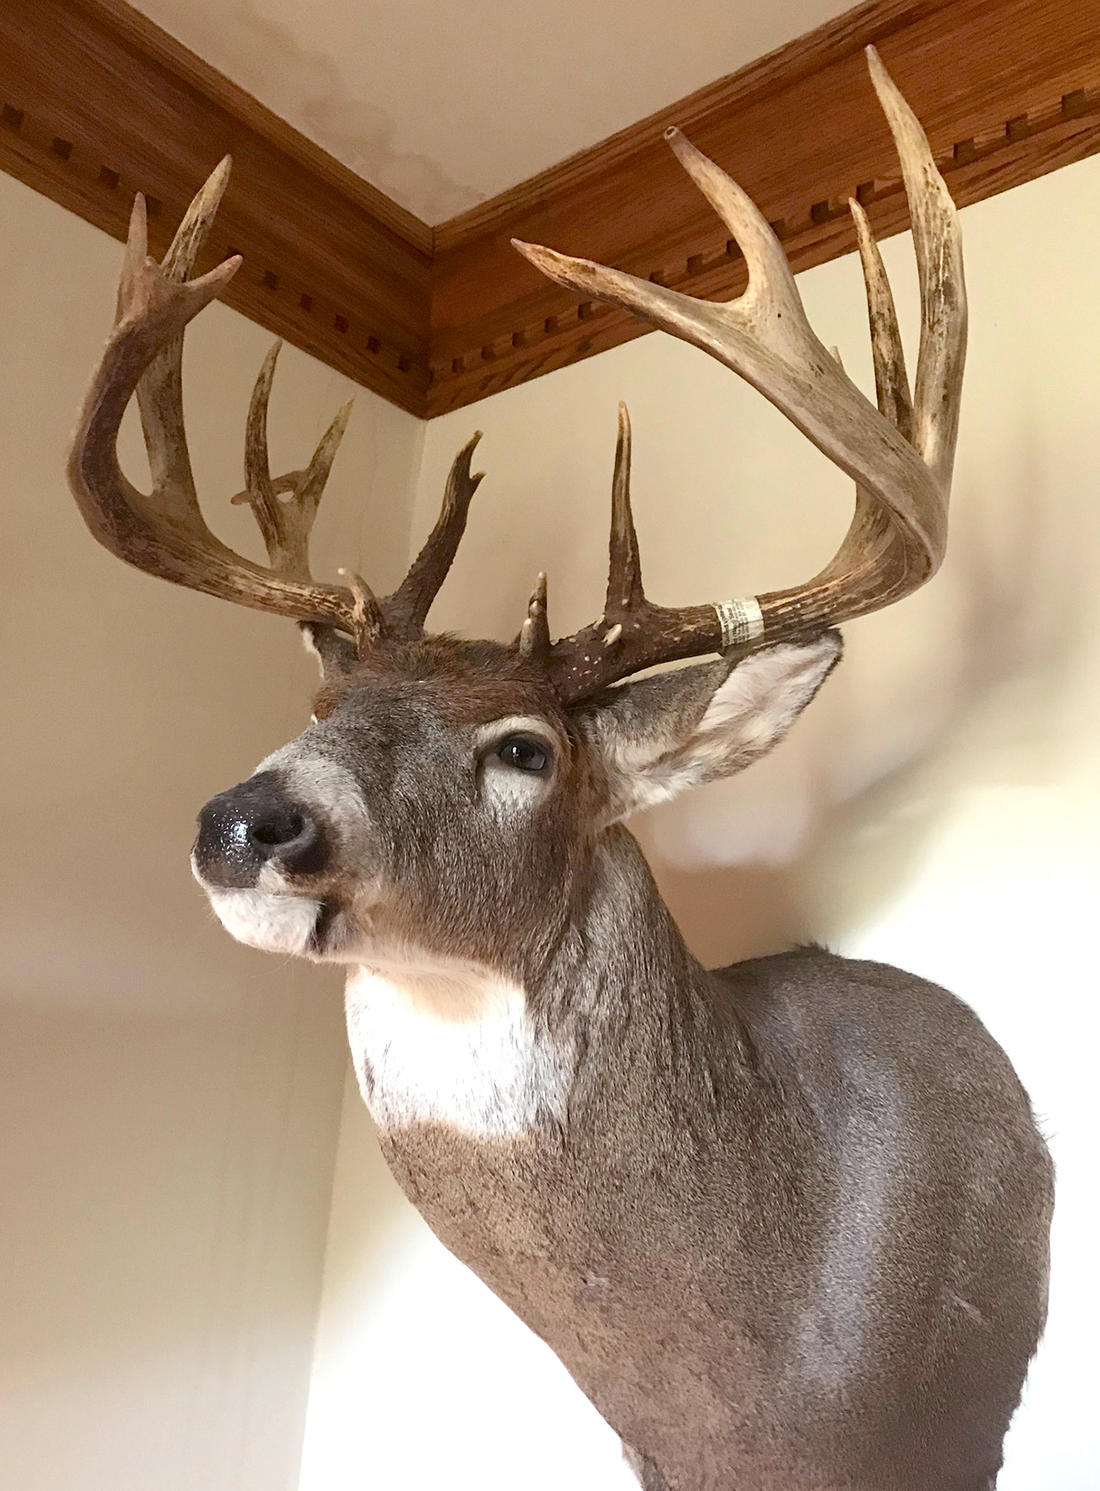 It took two years for the author to get the mount back from his best buck ever, but it was worth the wait.